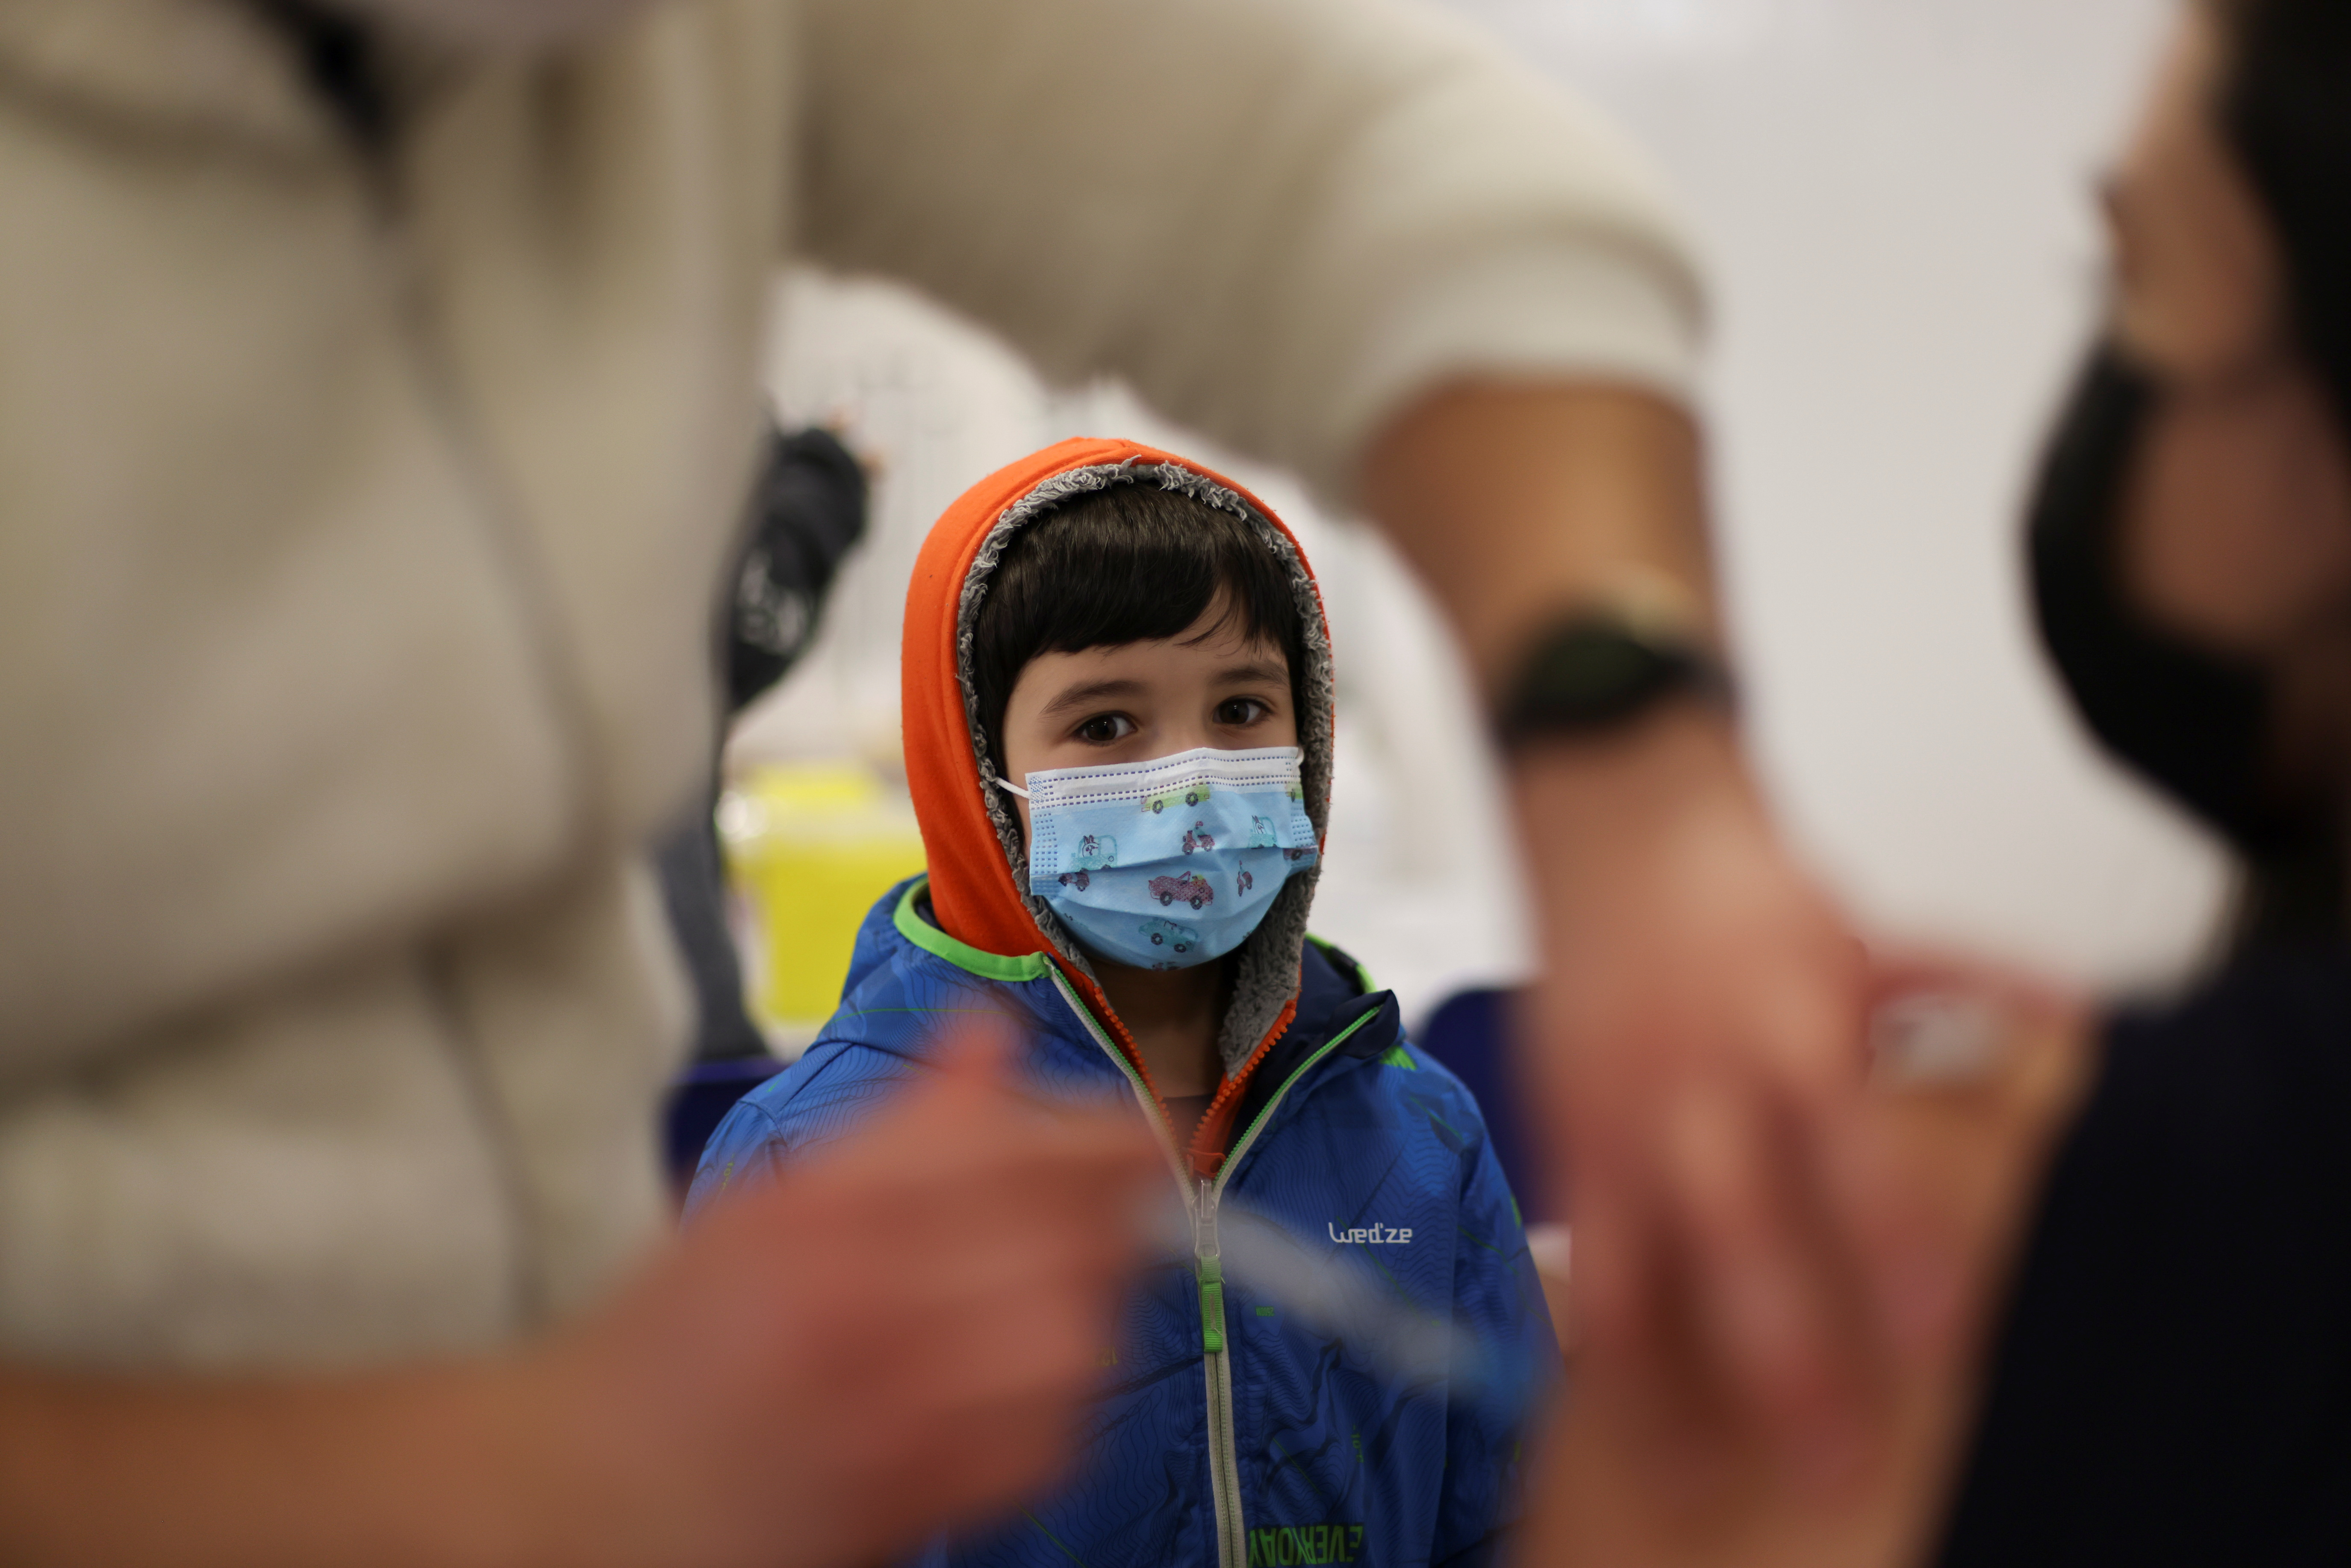 A child looks on as a woman receives a dose of Pfizer/BioNTech coronavirus disease (COVID-19) vaccine during a vaccination campaign inside the University of Santiago, Chile June 30, 2021. REUTERS/Ivan Alvarado/File Photo